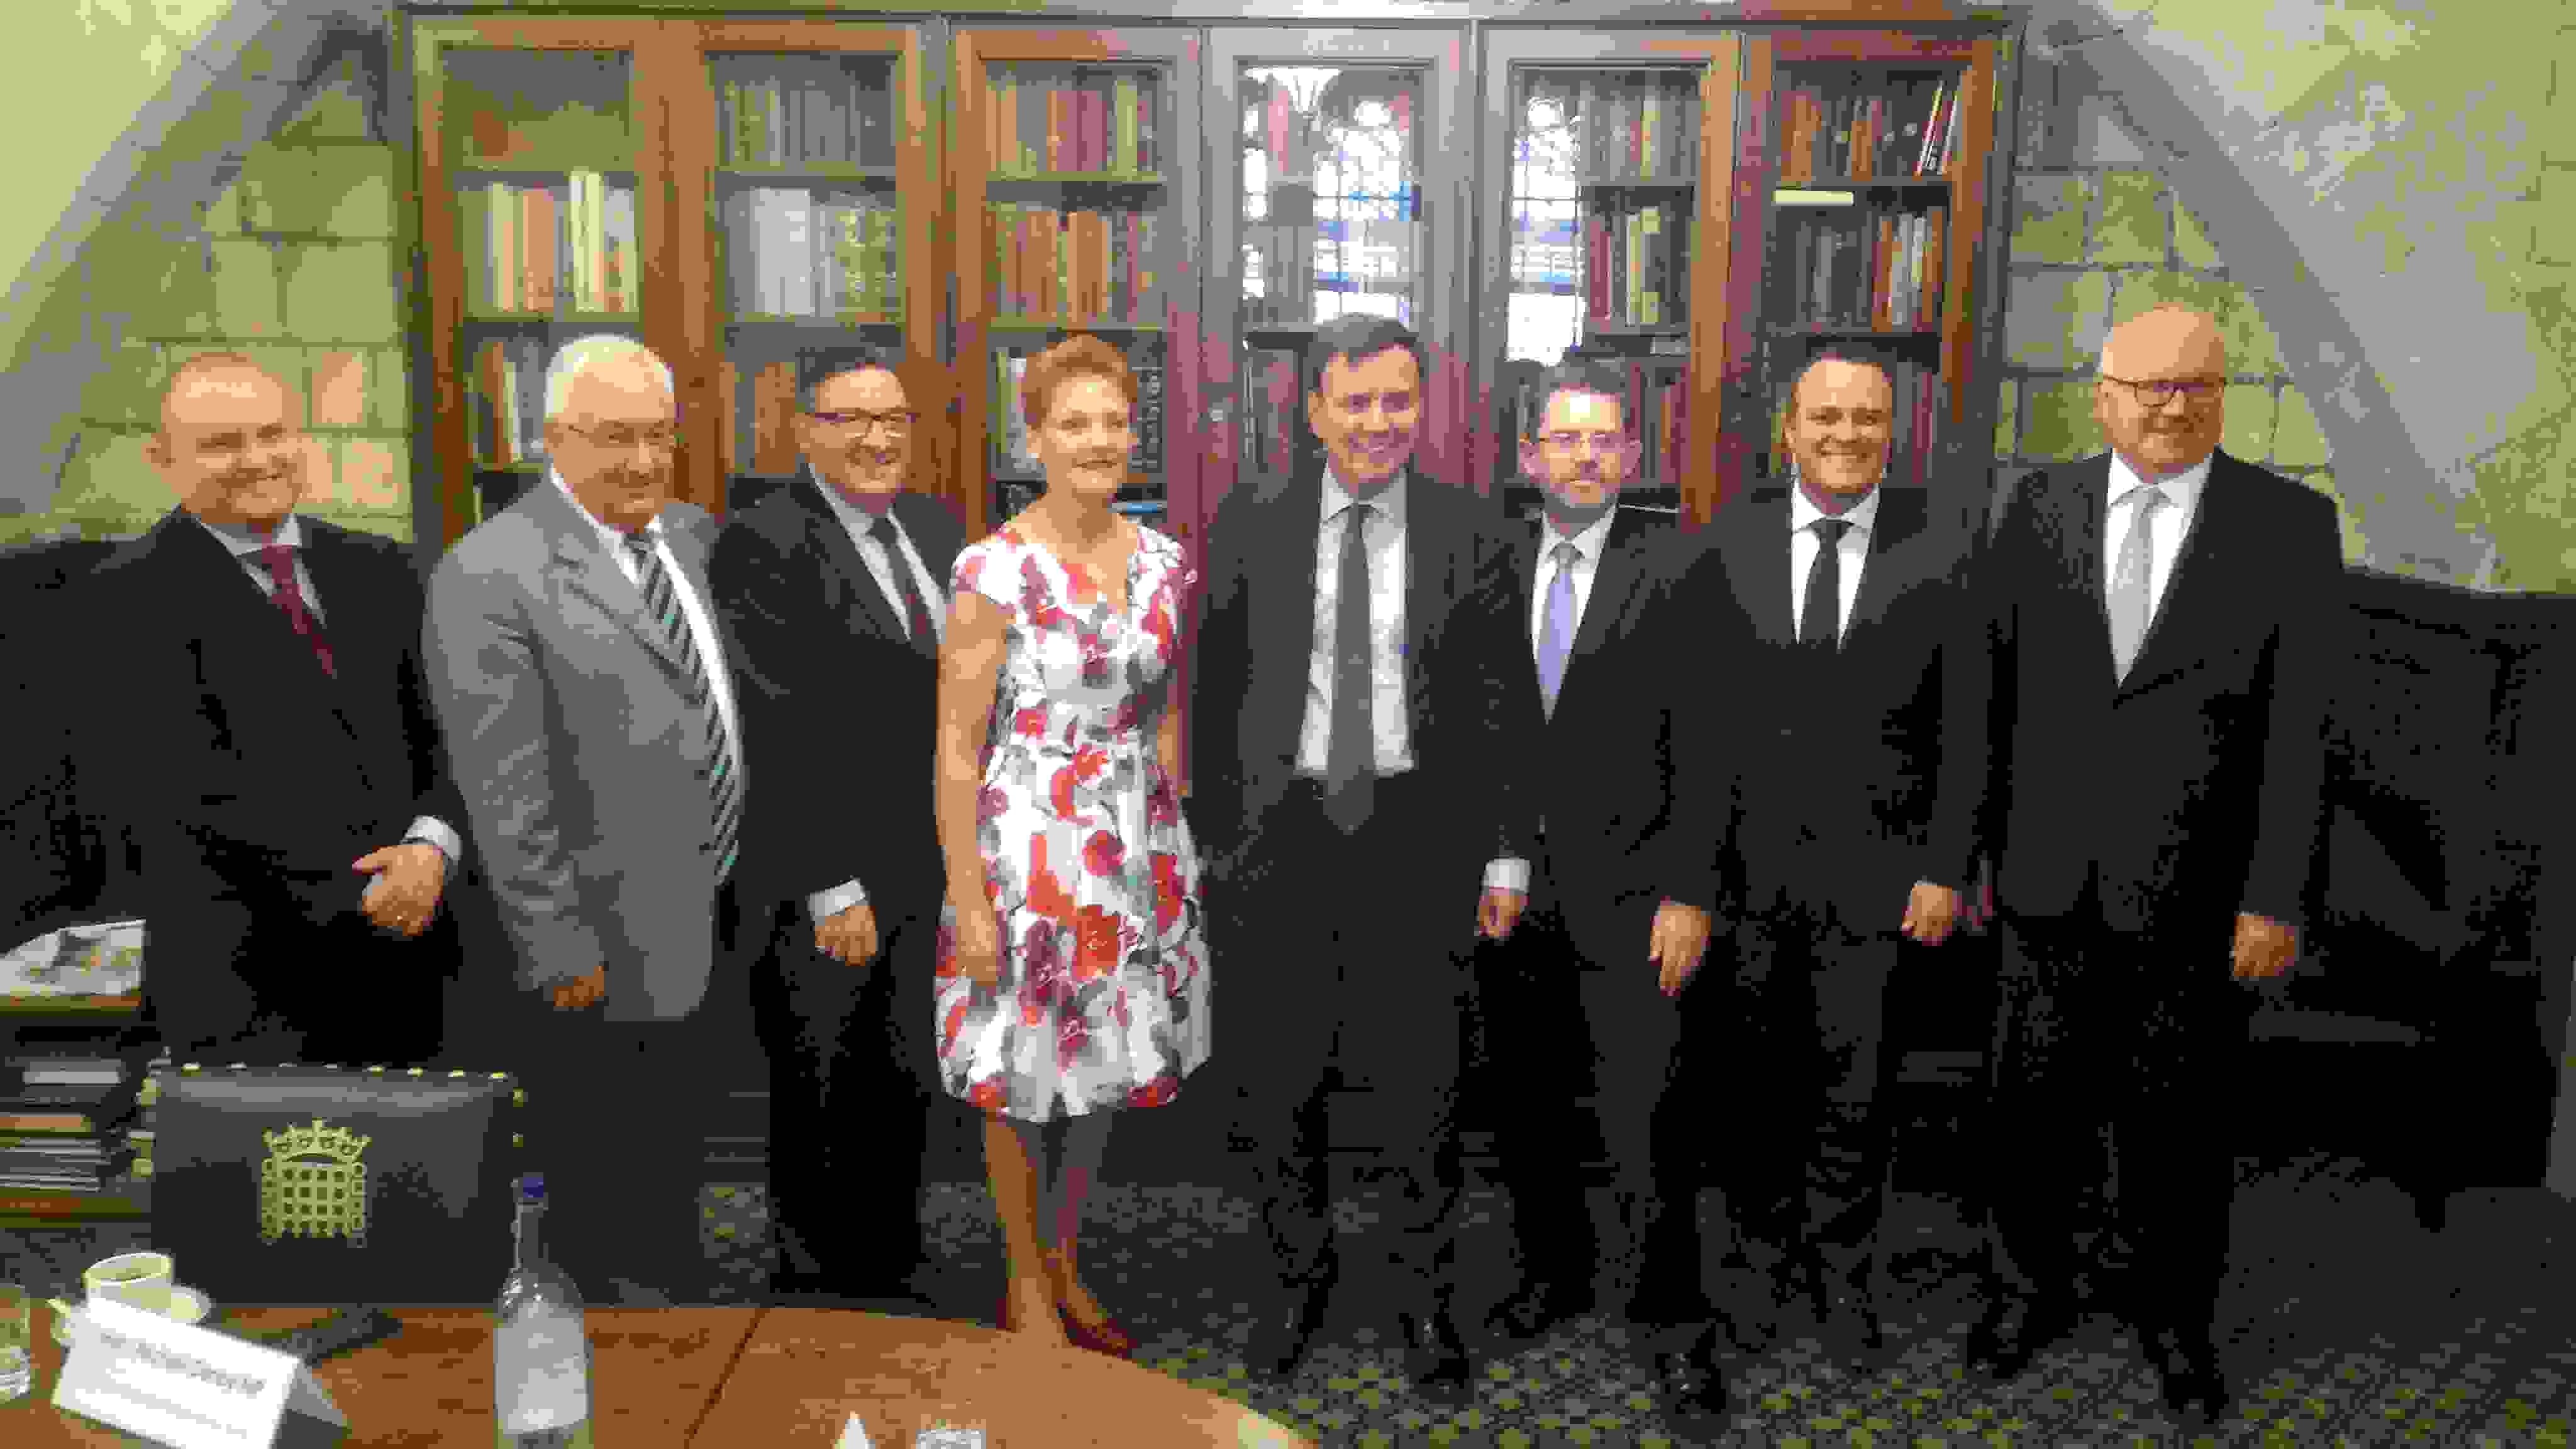 Australia – Study Visit from the Commonwealth Parliament of Australia listing image